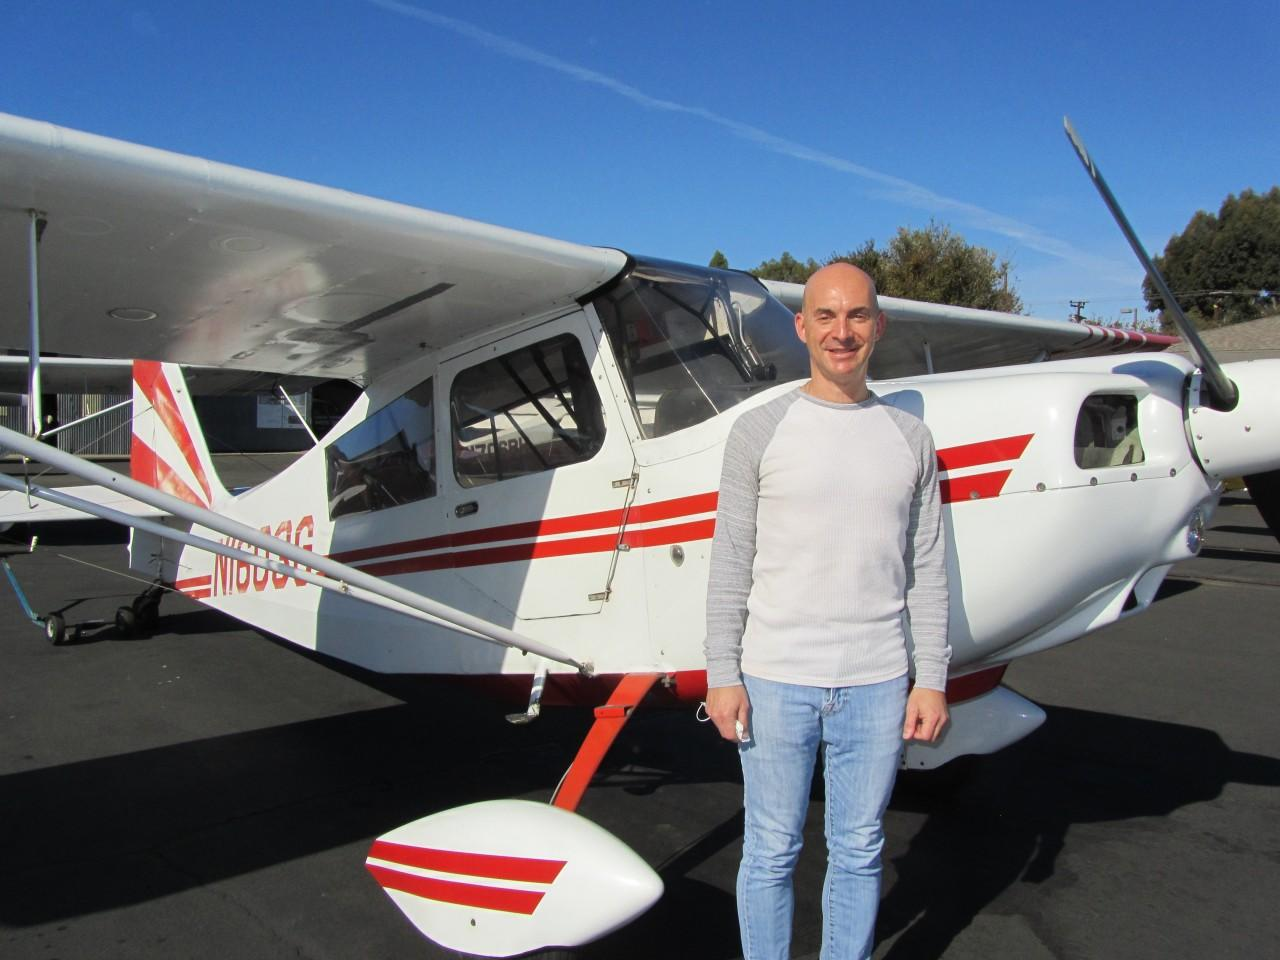 Tailwheel Endorsement - Jeff Howard